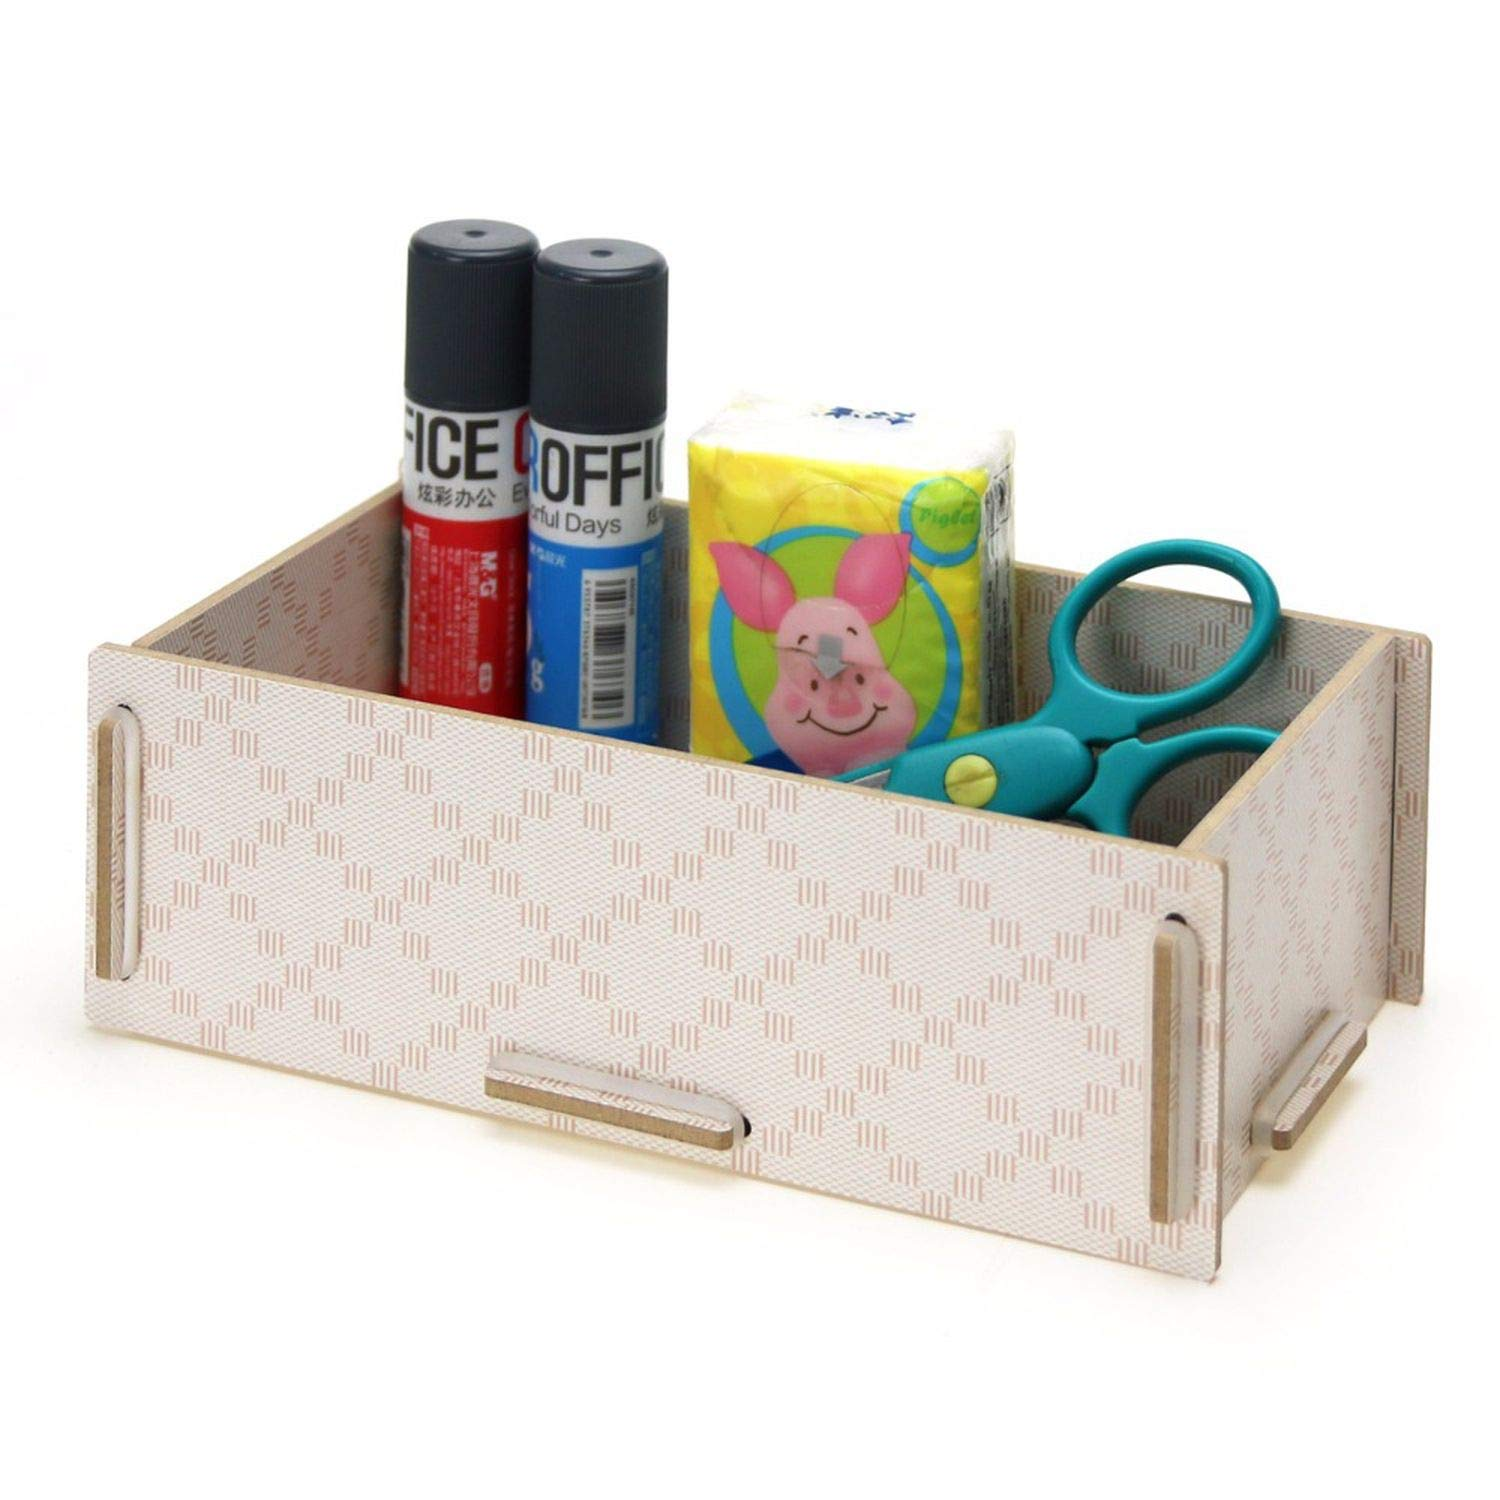 Wood Desktop Office Stationery Collection Room Sundry Receive Box for Remote control/scissors/pen,05 by Collocation-Online (Image #4)